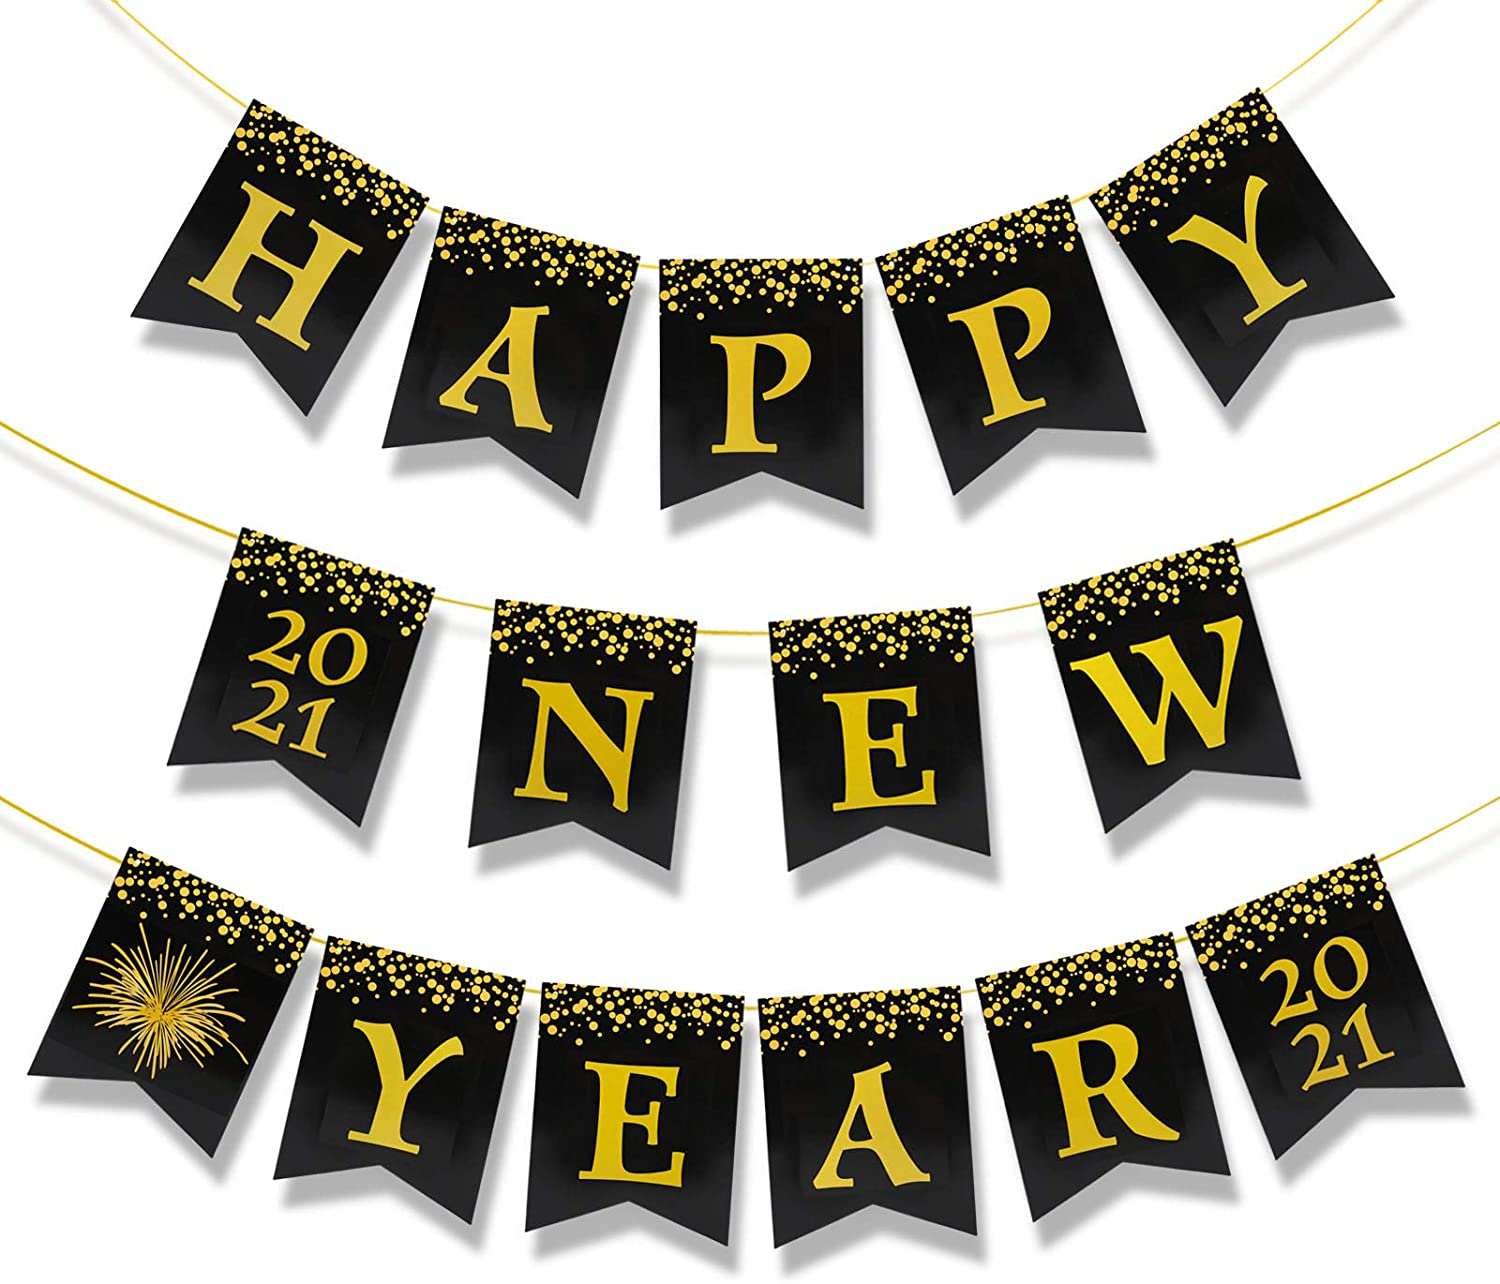 Black and Gold Banner Sign 2021 New Year Eve Party Decorations Supplies HOWAF Happy New Year Banner for 2021 New Year Decoration Shiny Gold Printed New Year Hanging Garland Sign Decor